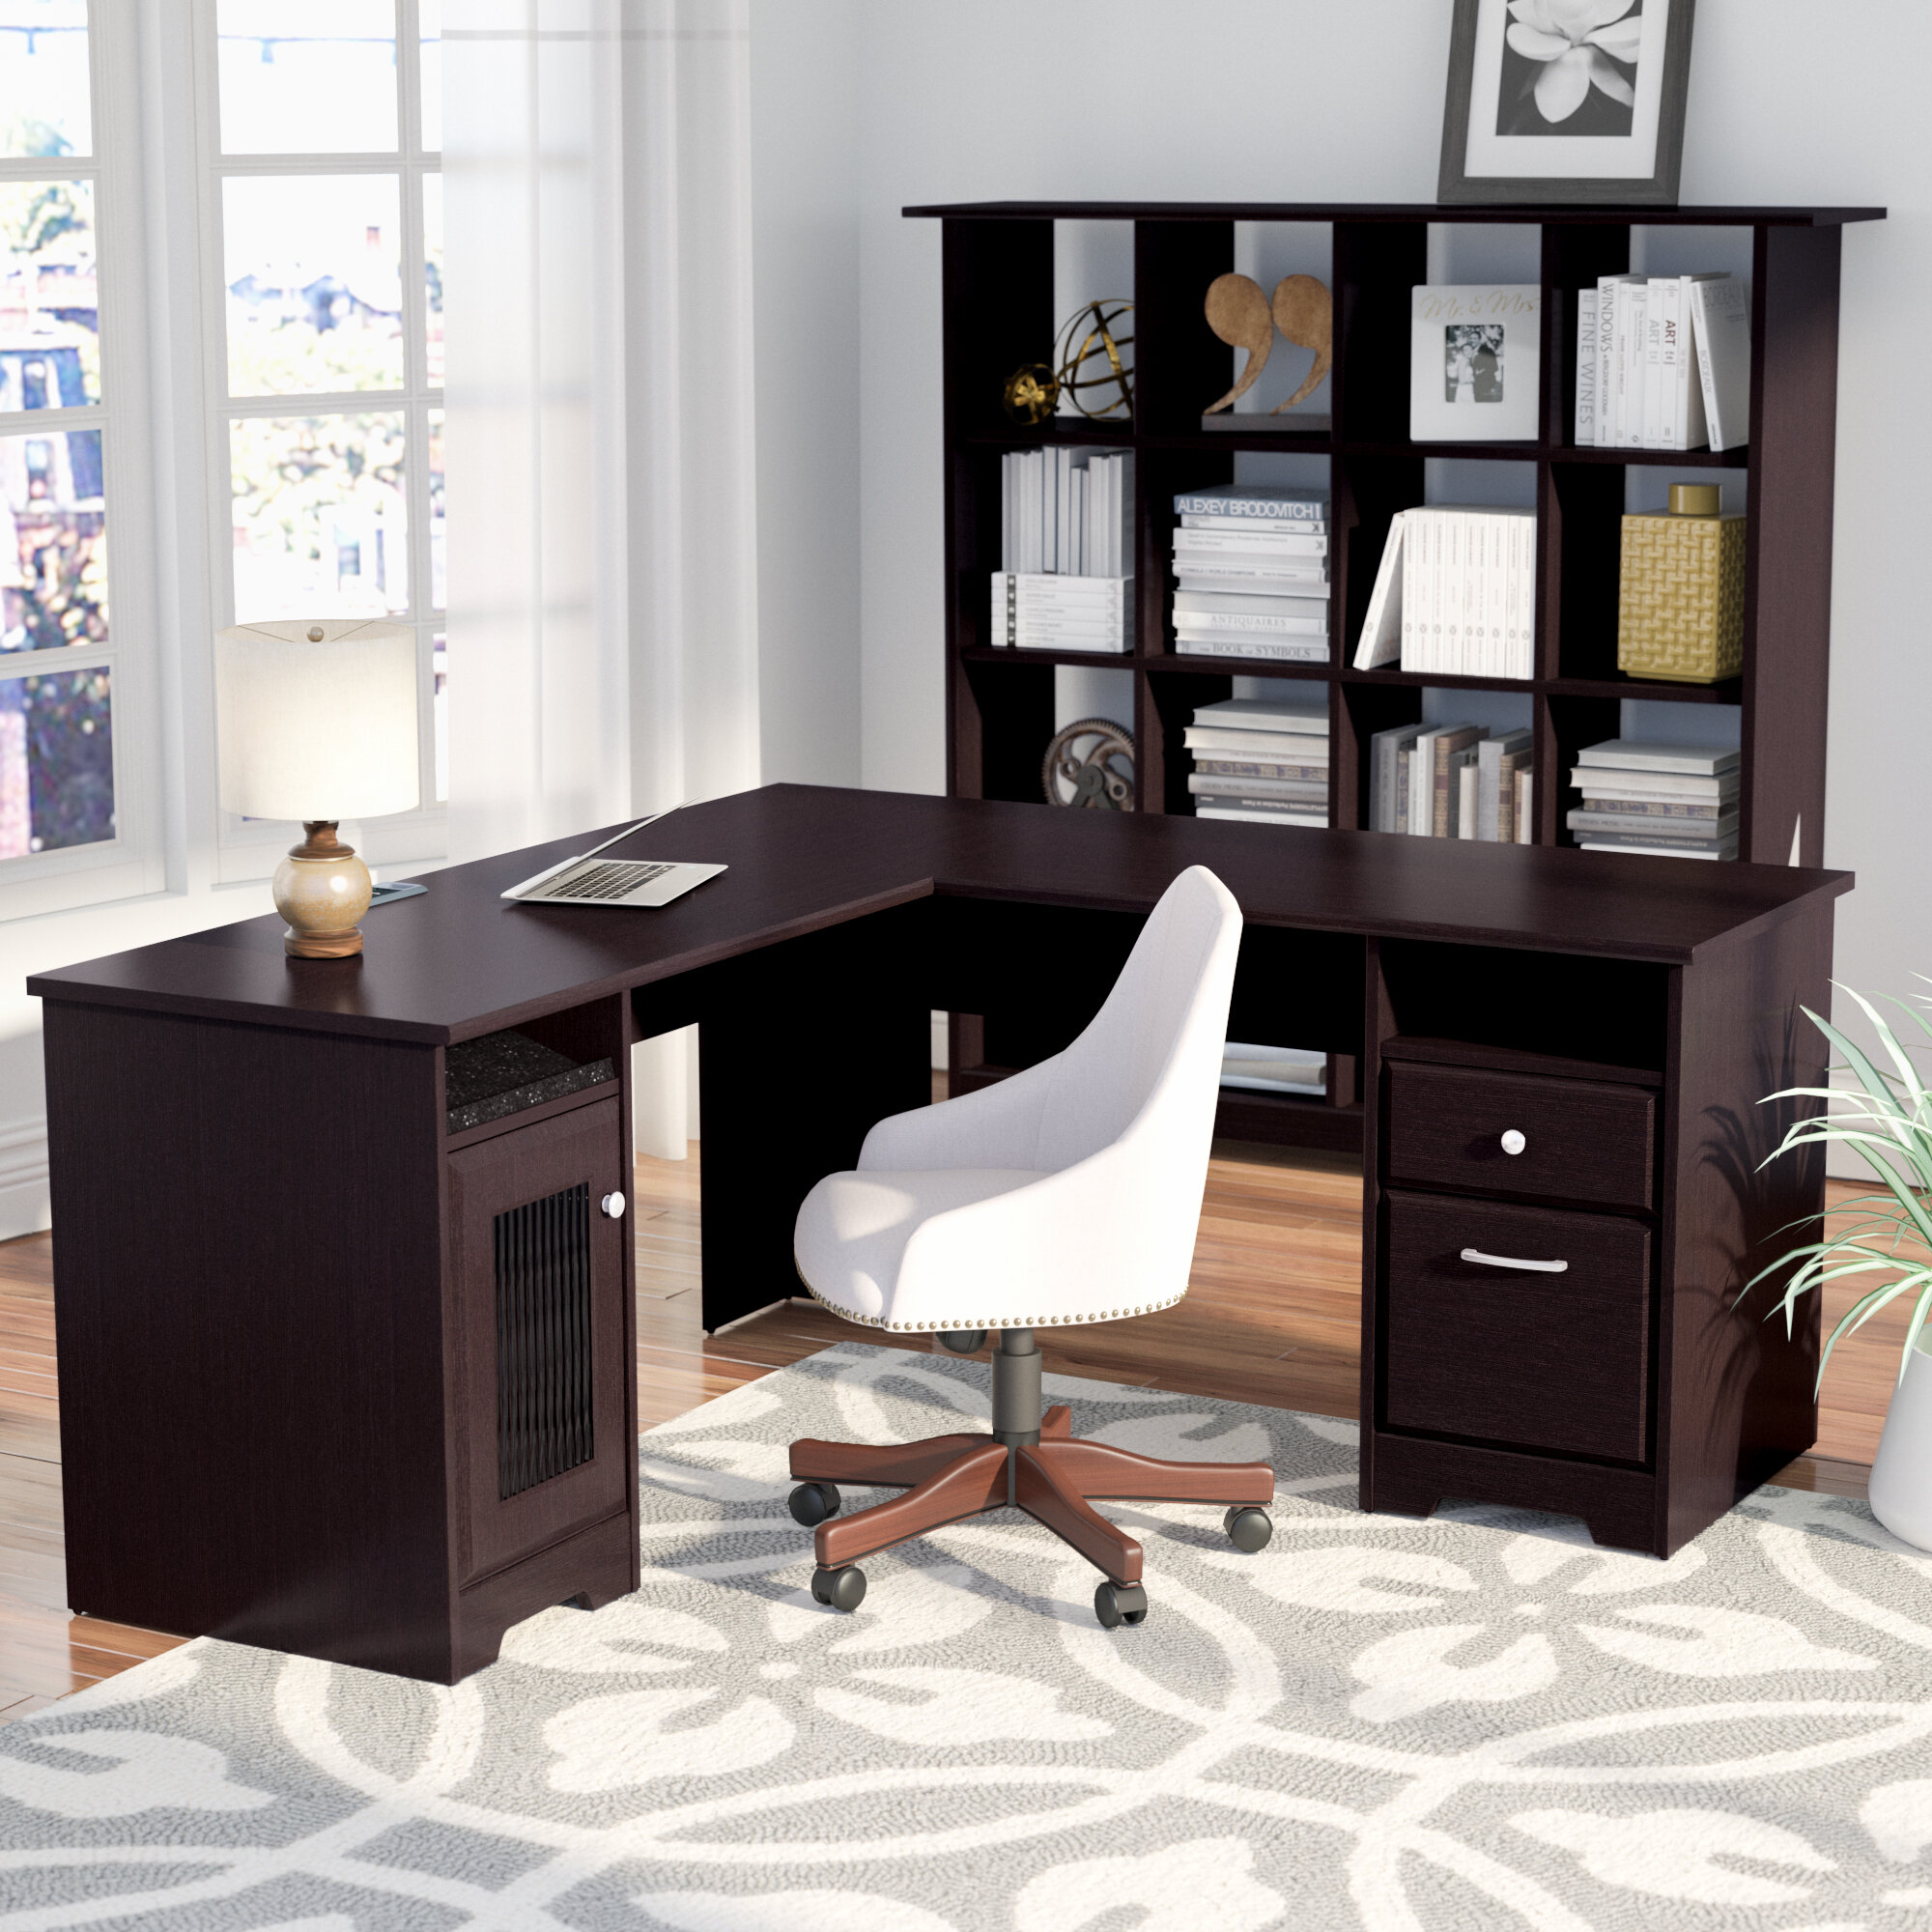 Red Barrel Studio Hillsdale Desk With Bookcase Office Set Reviews